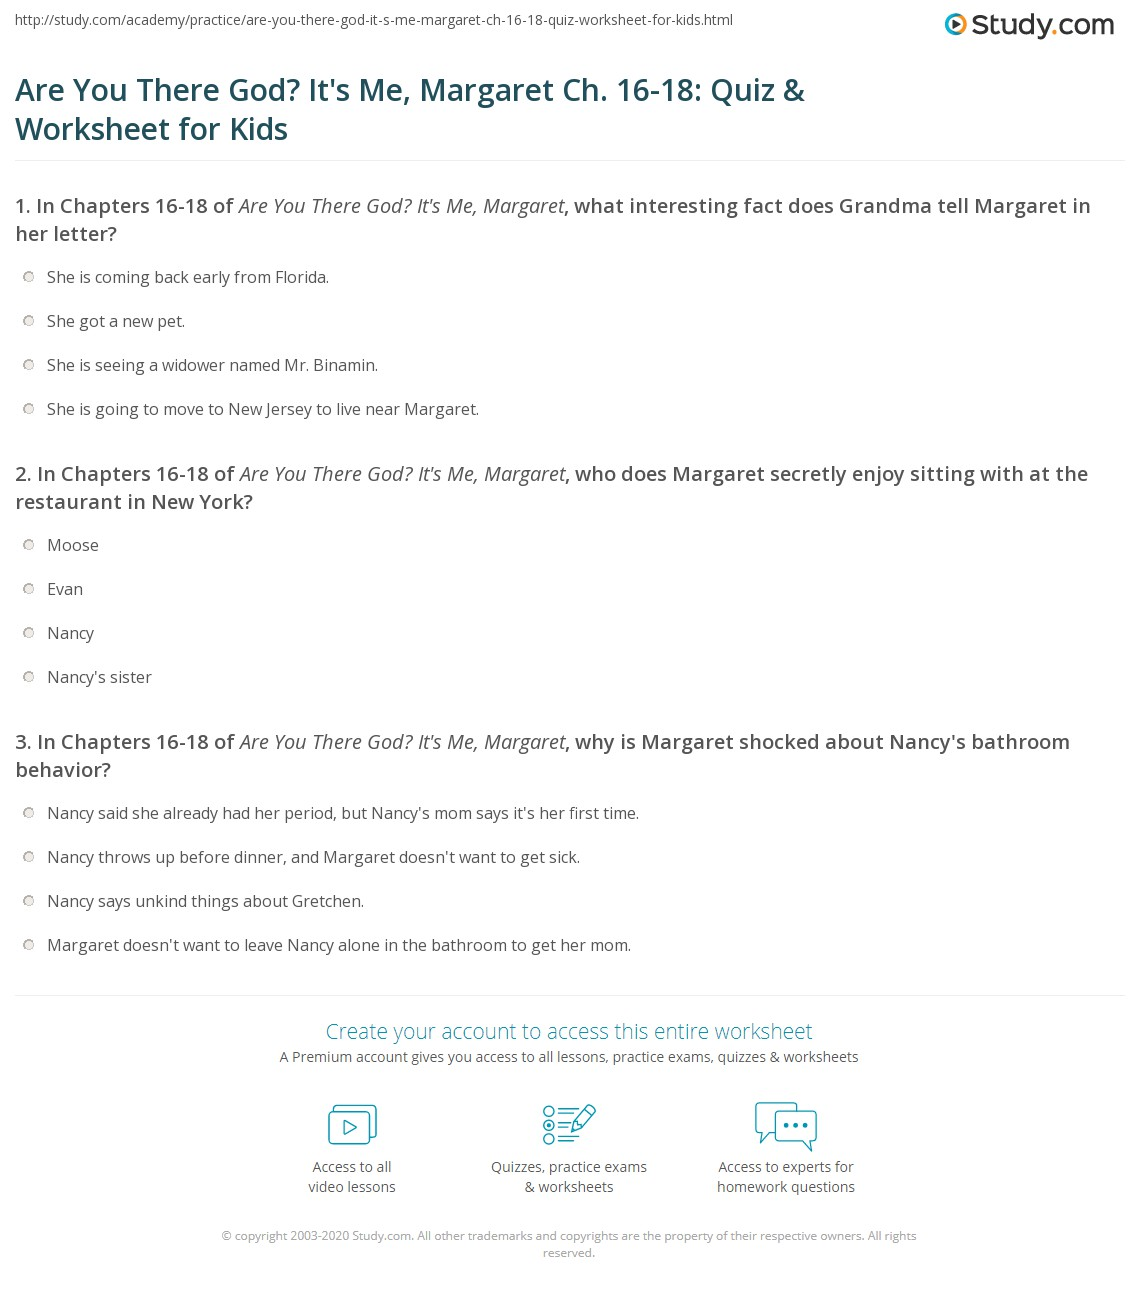 Are You There God? It's Me, Margaret Ch  16-18: Quiz & Worksheet for